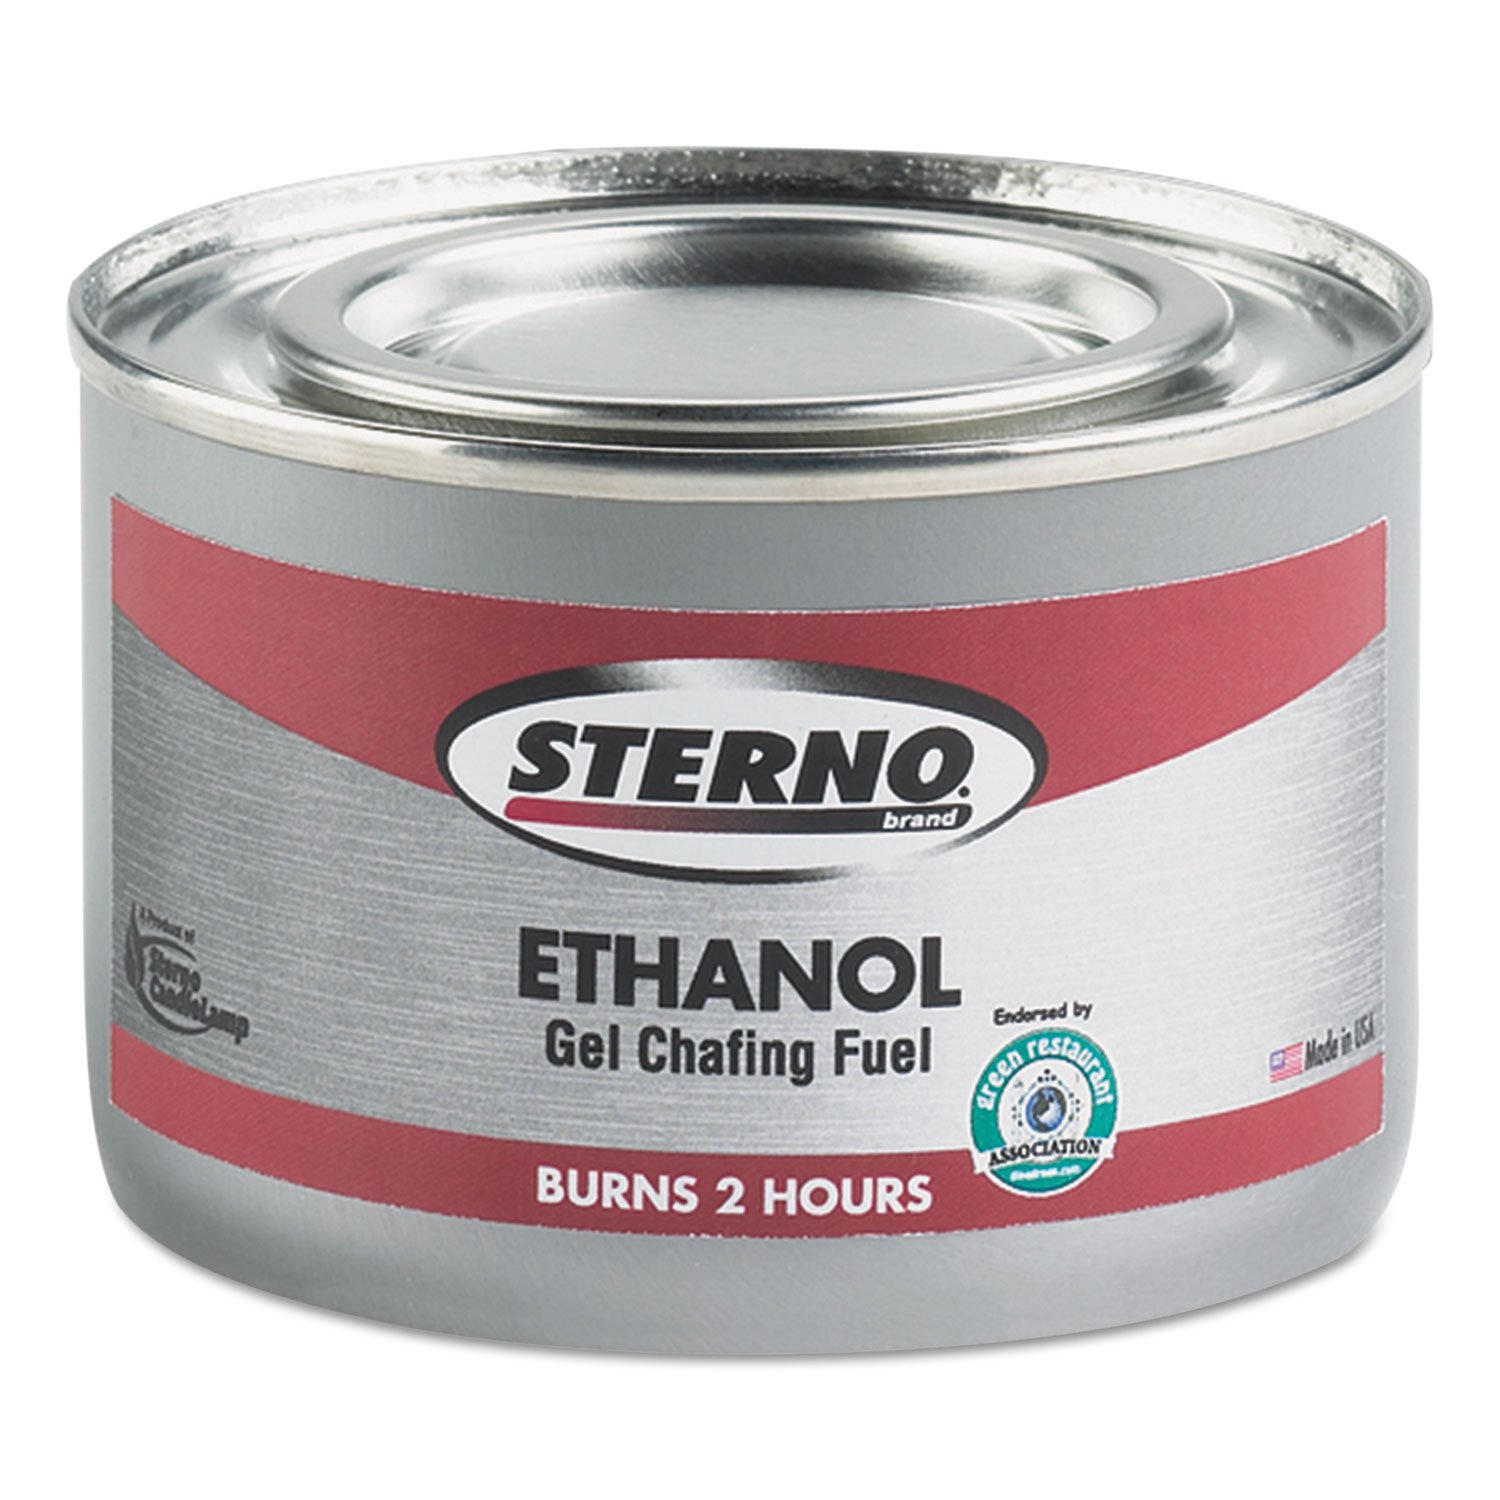 72PK Gel Chafing Fuel by Sterno Group The